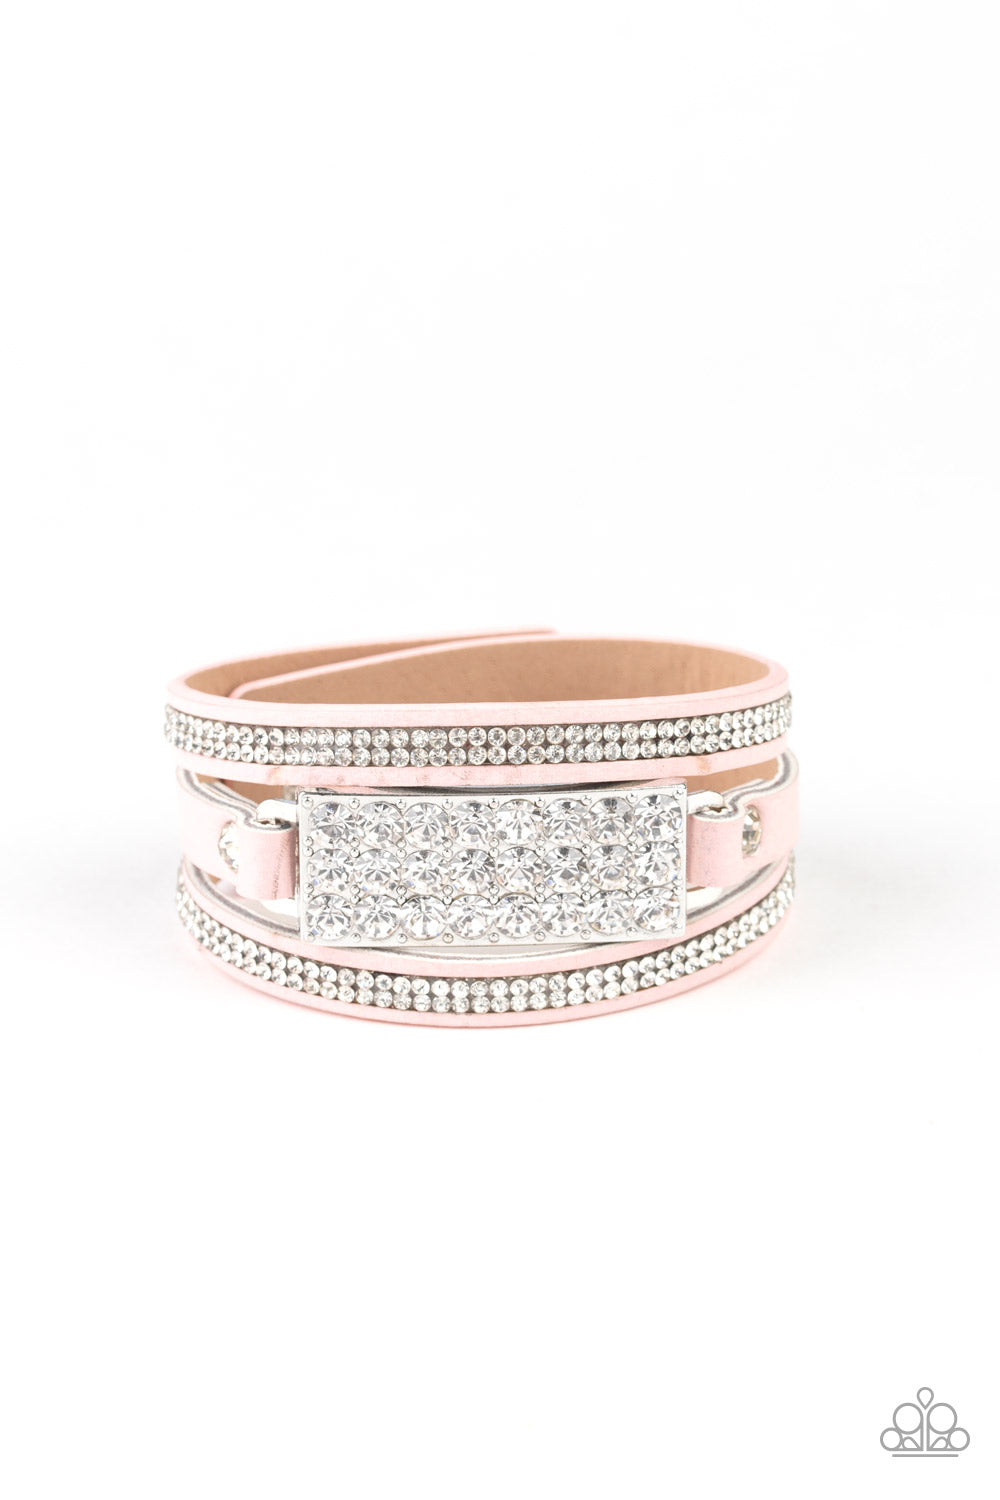 Shockingly Sparkly Pink Bracelet